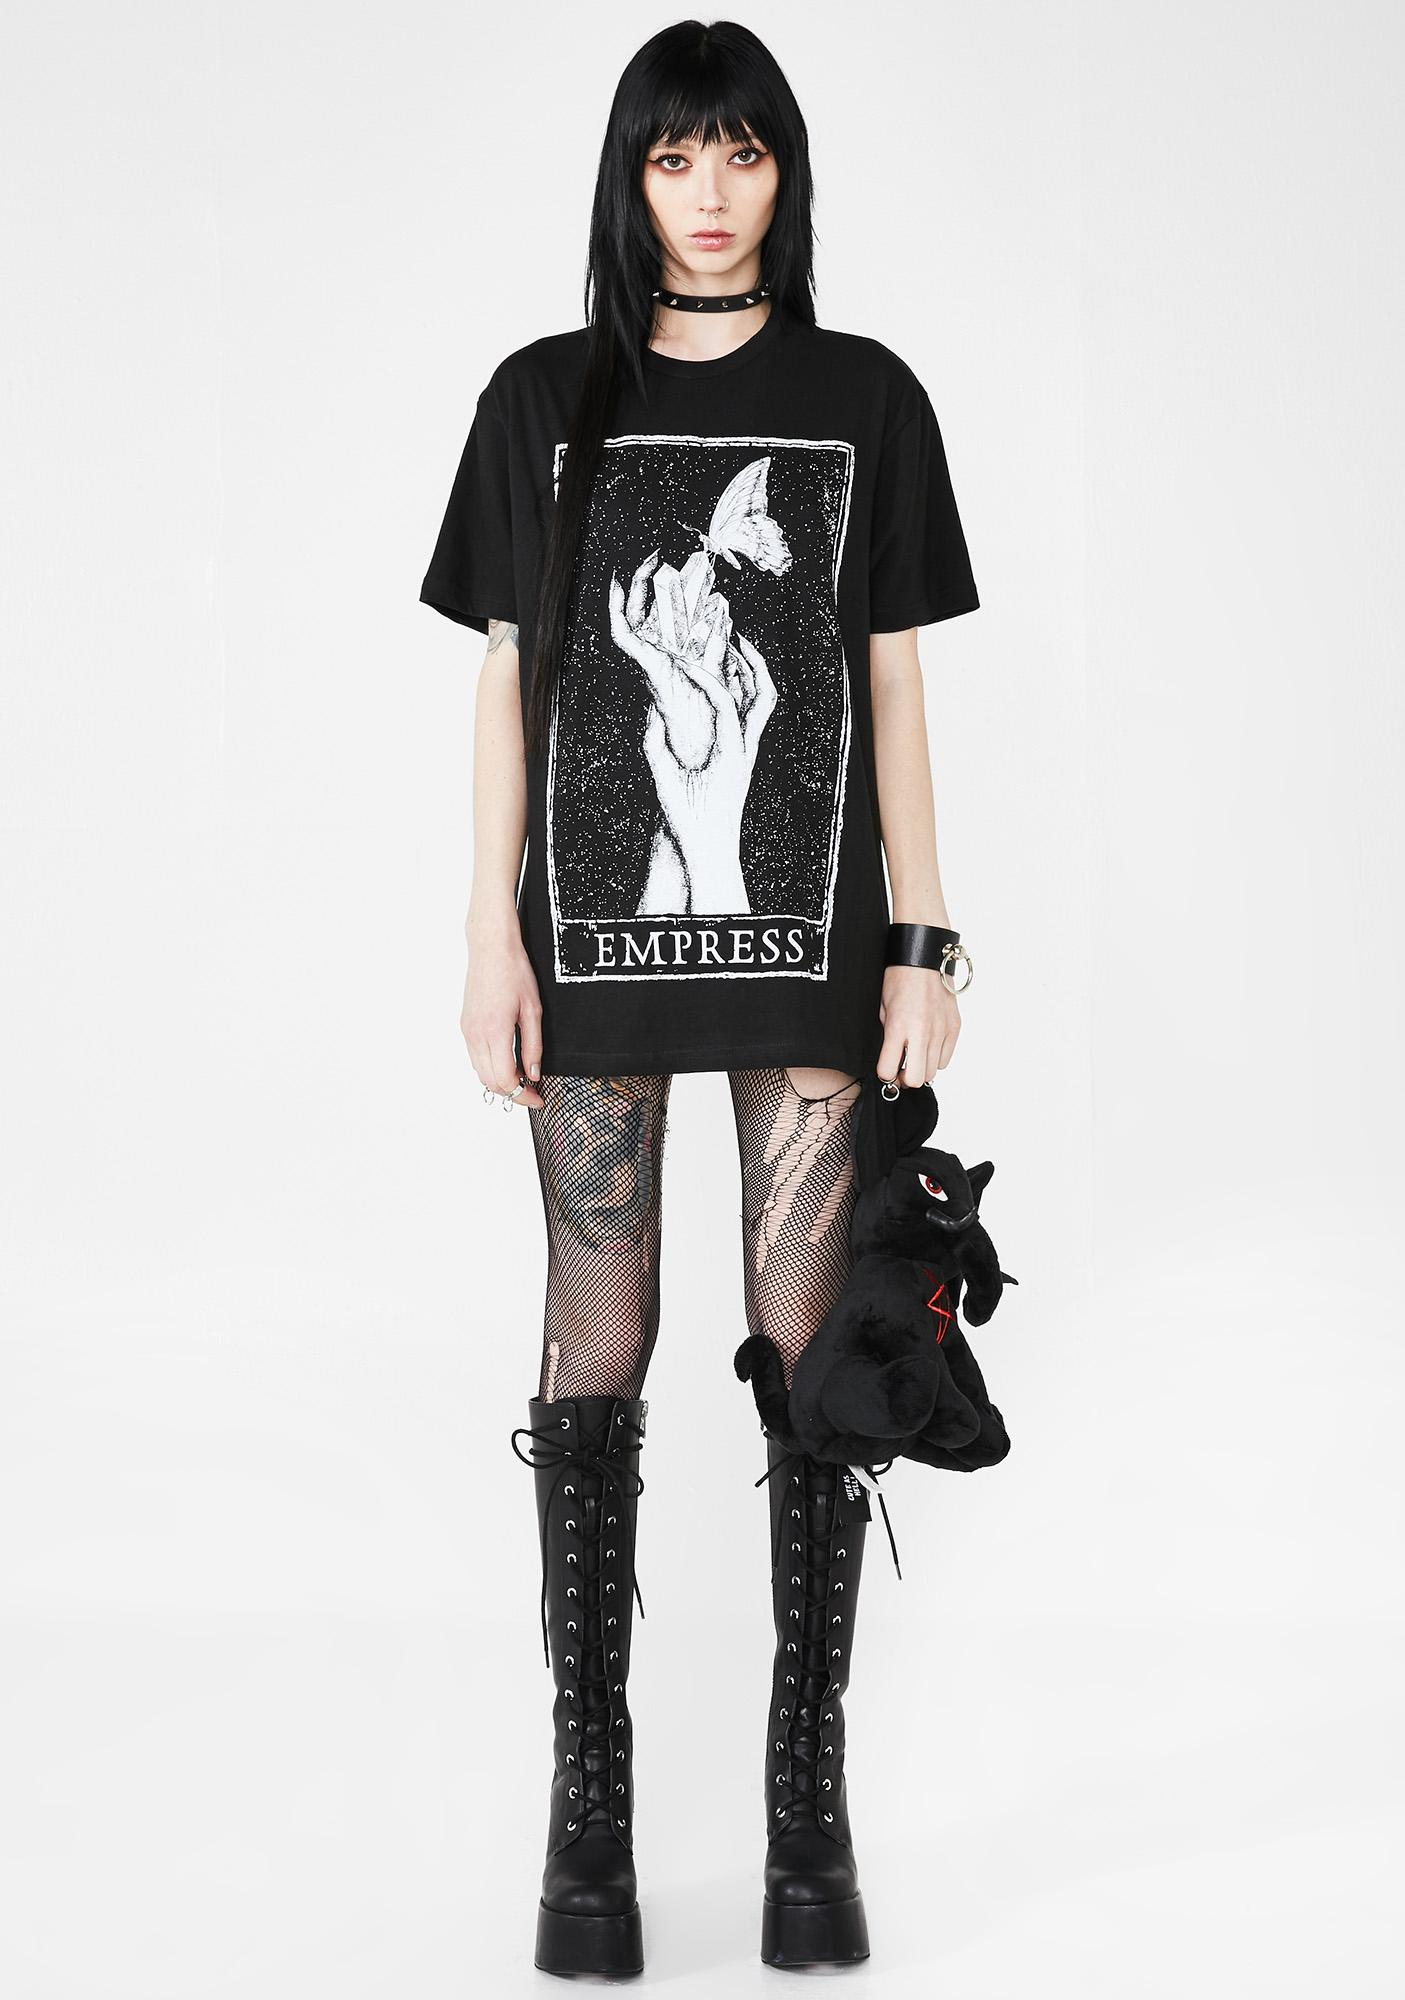 Mortus Viventi Empress T-Shirt